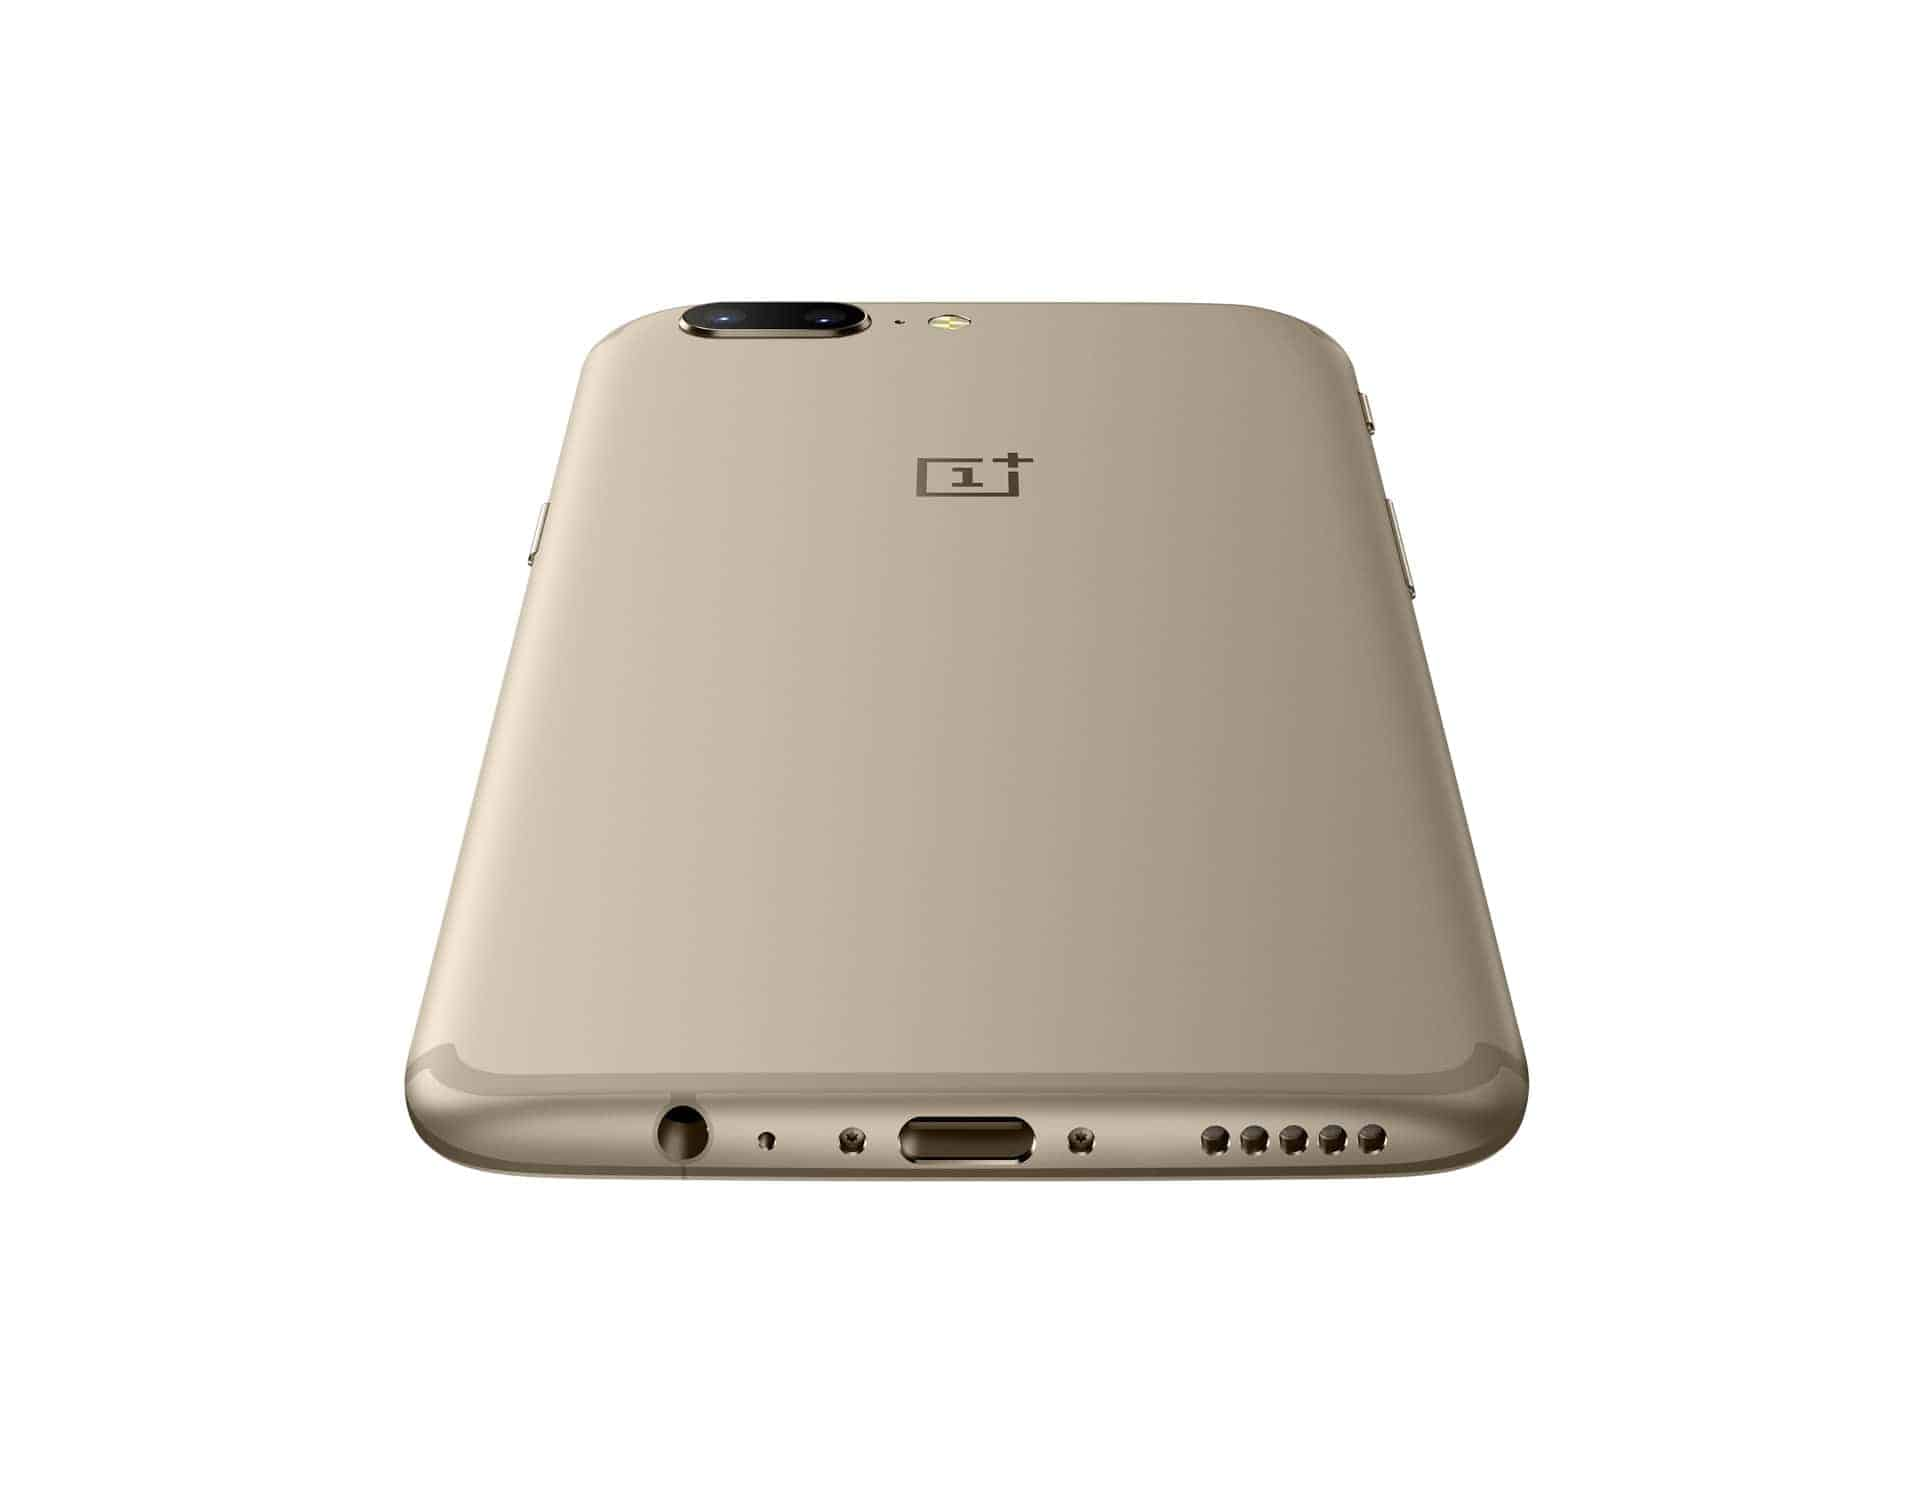 OnePlus 5 Soft Gold 10